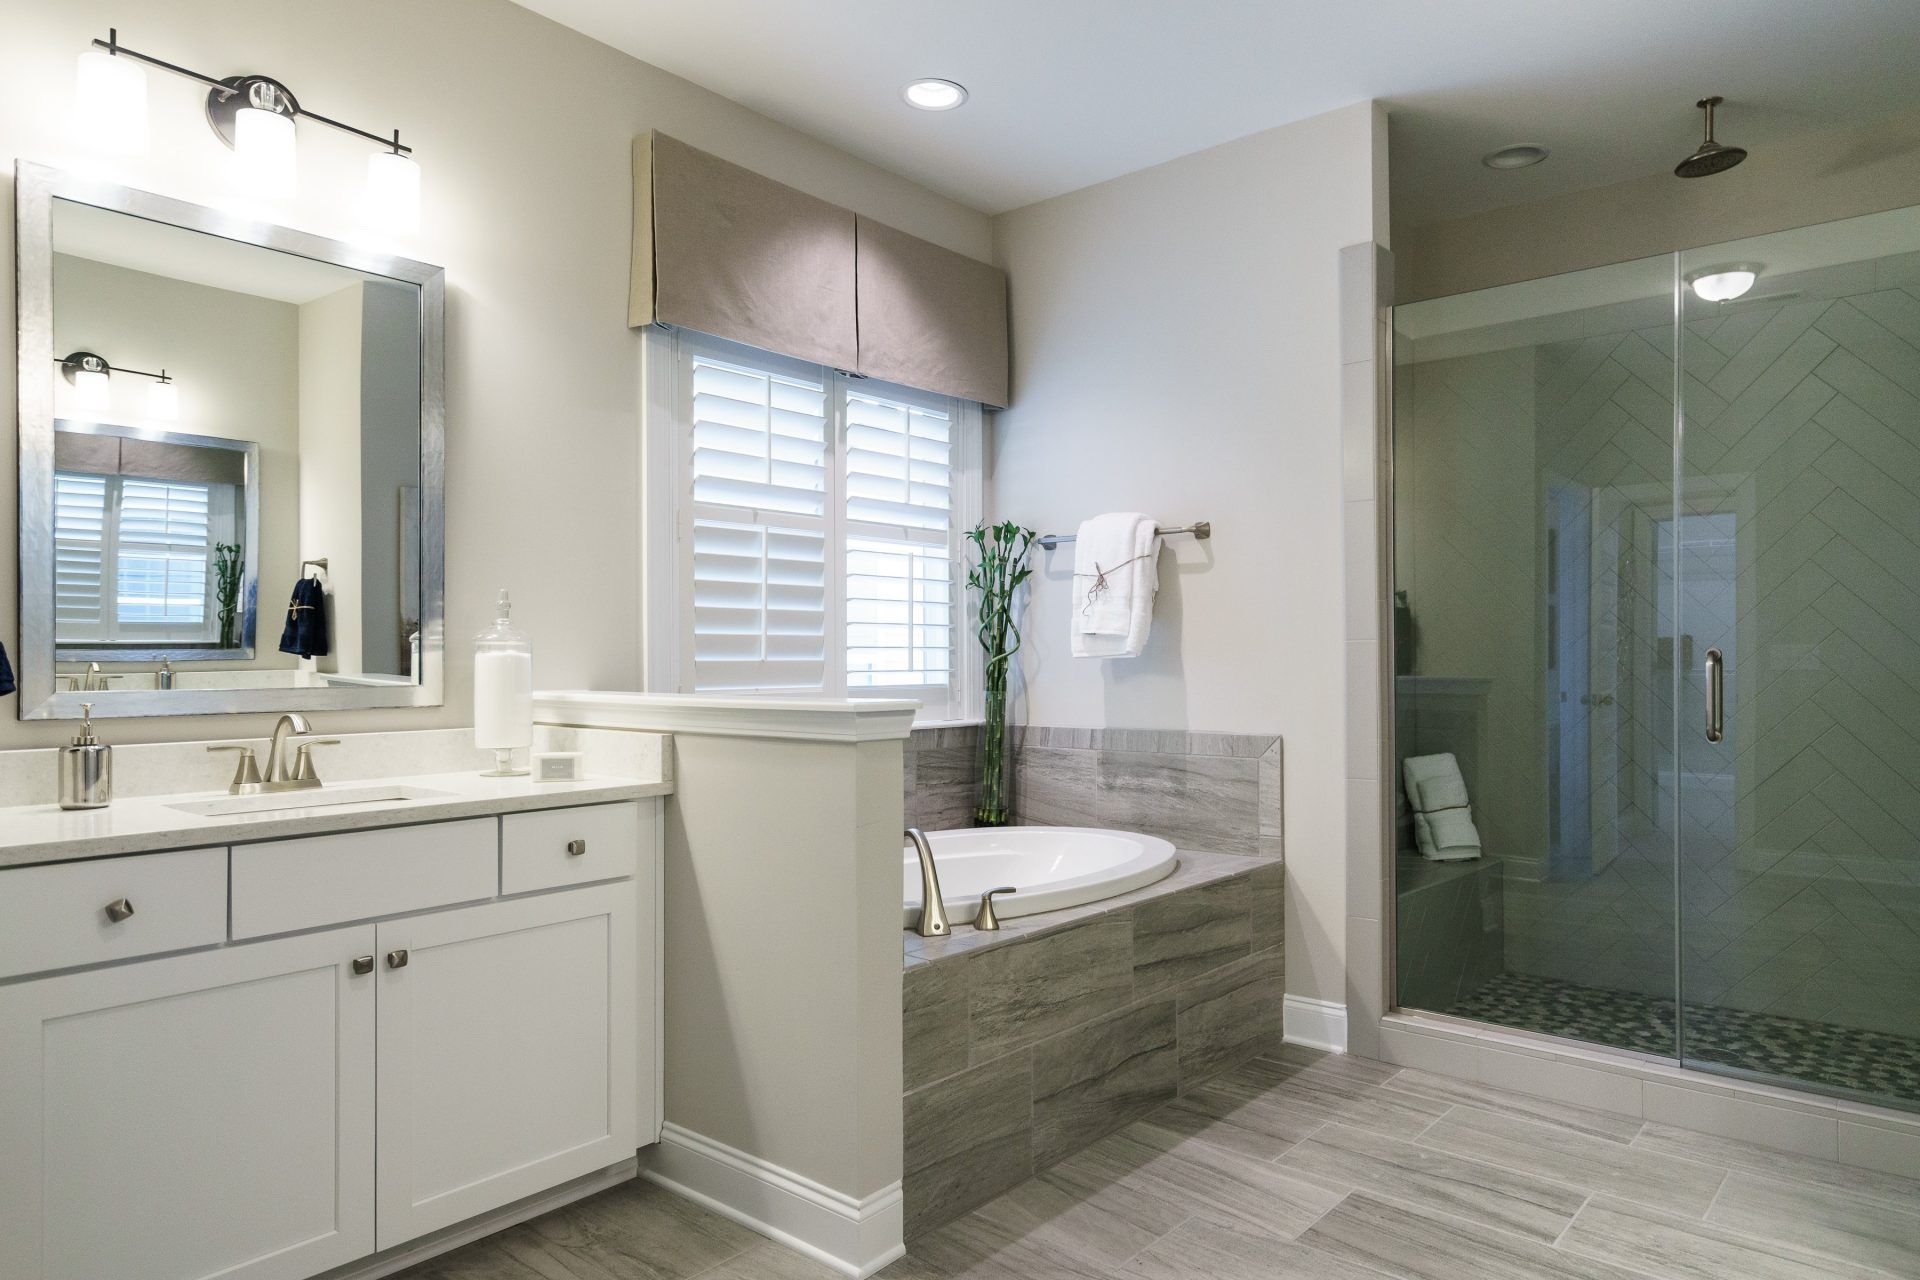 Bathroom featured in the Winslow By HHHunt Homes LLC in Richmond-Petersburg, VA